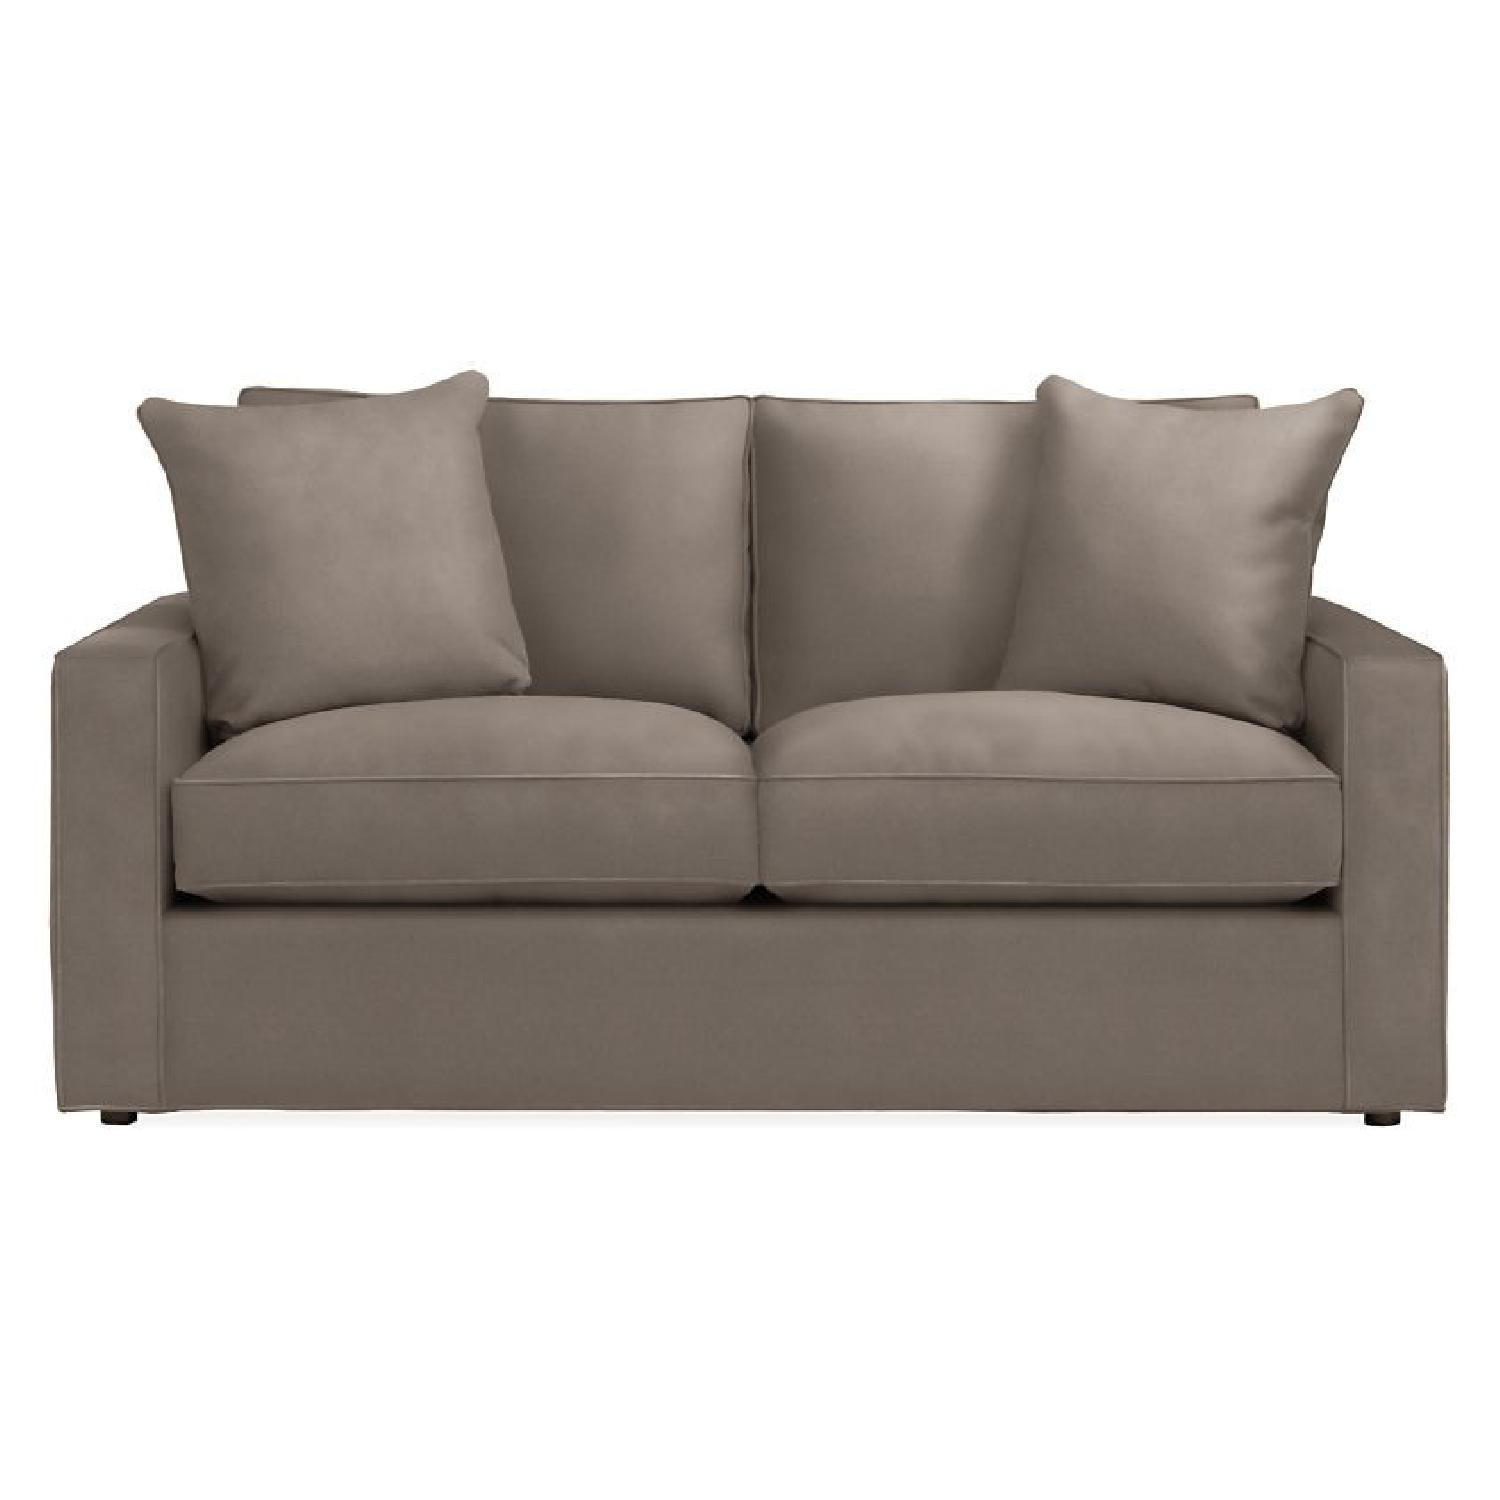 Room & Board Sleeper Pullout Sofa